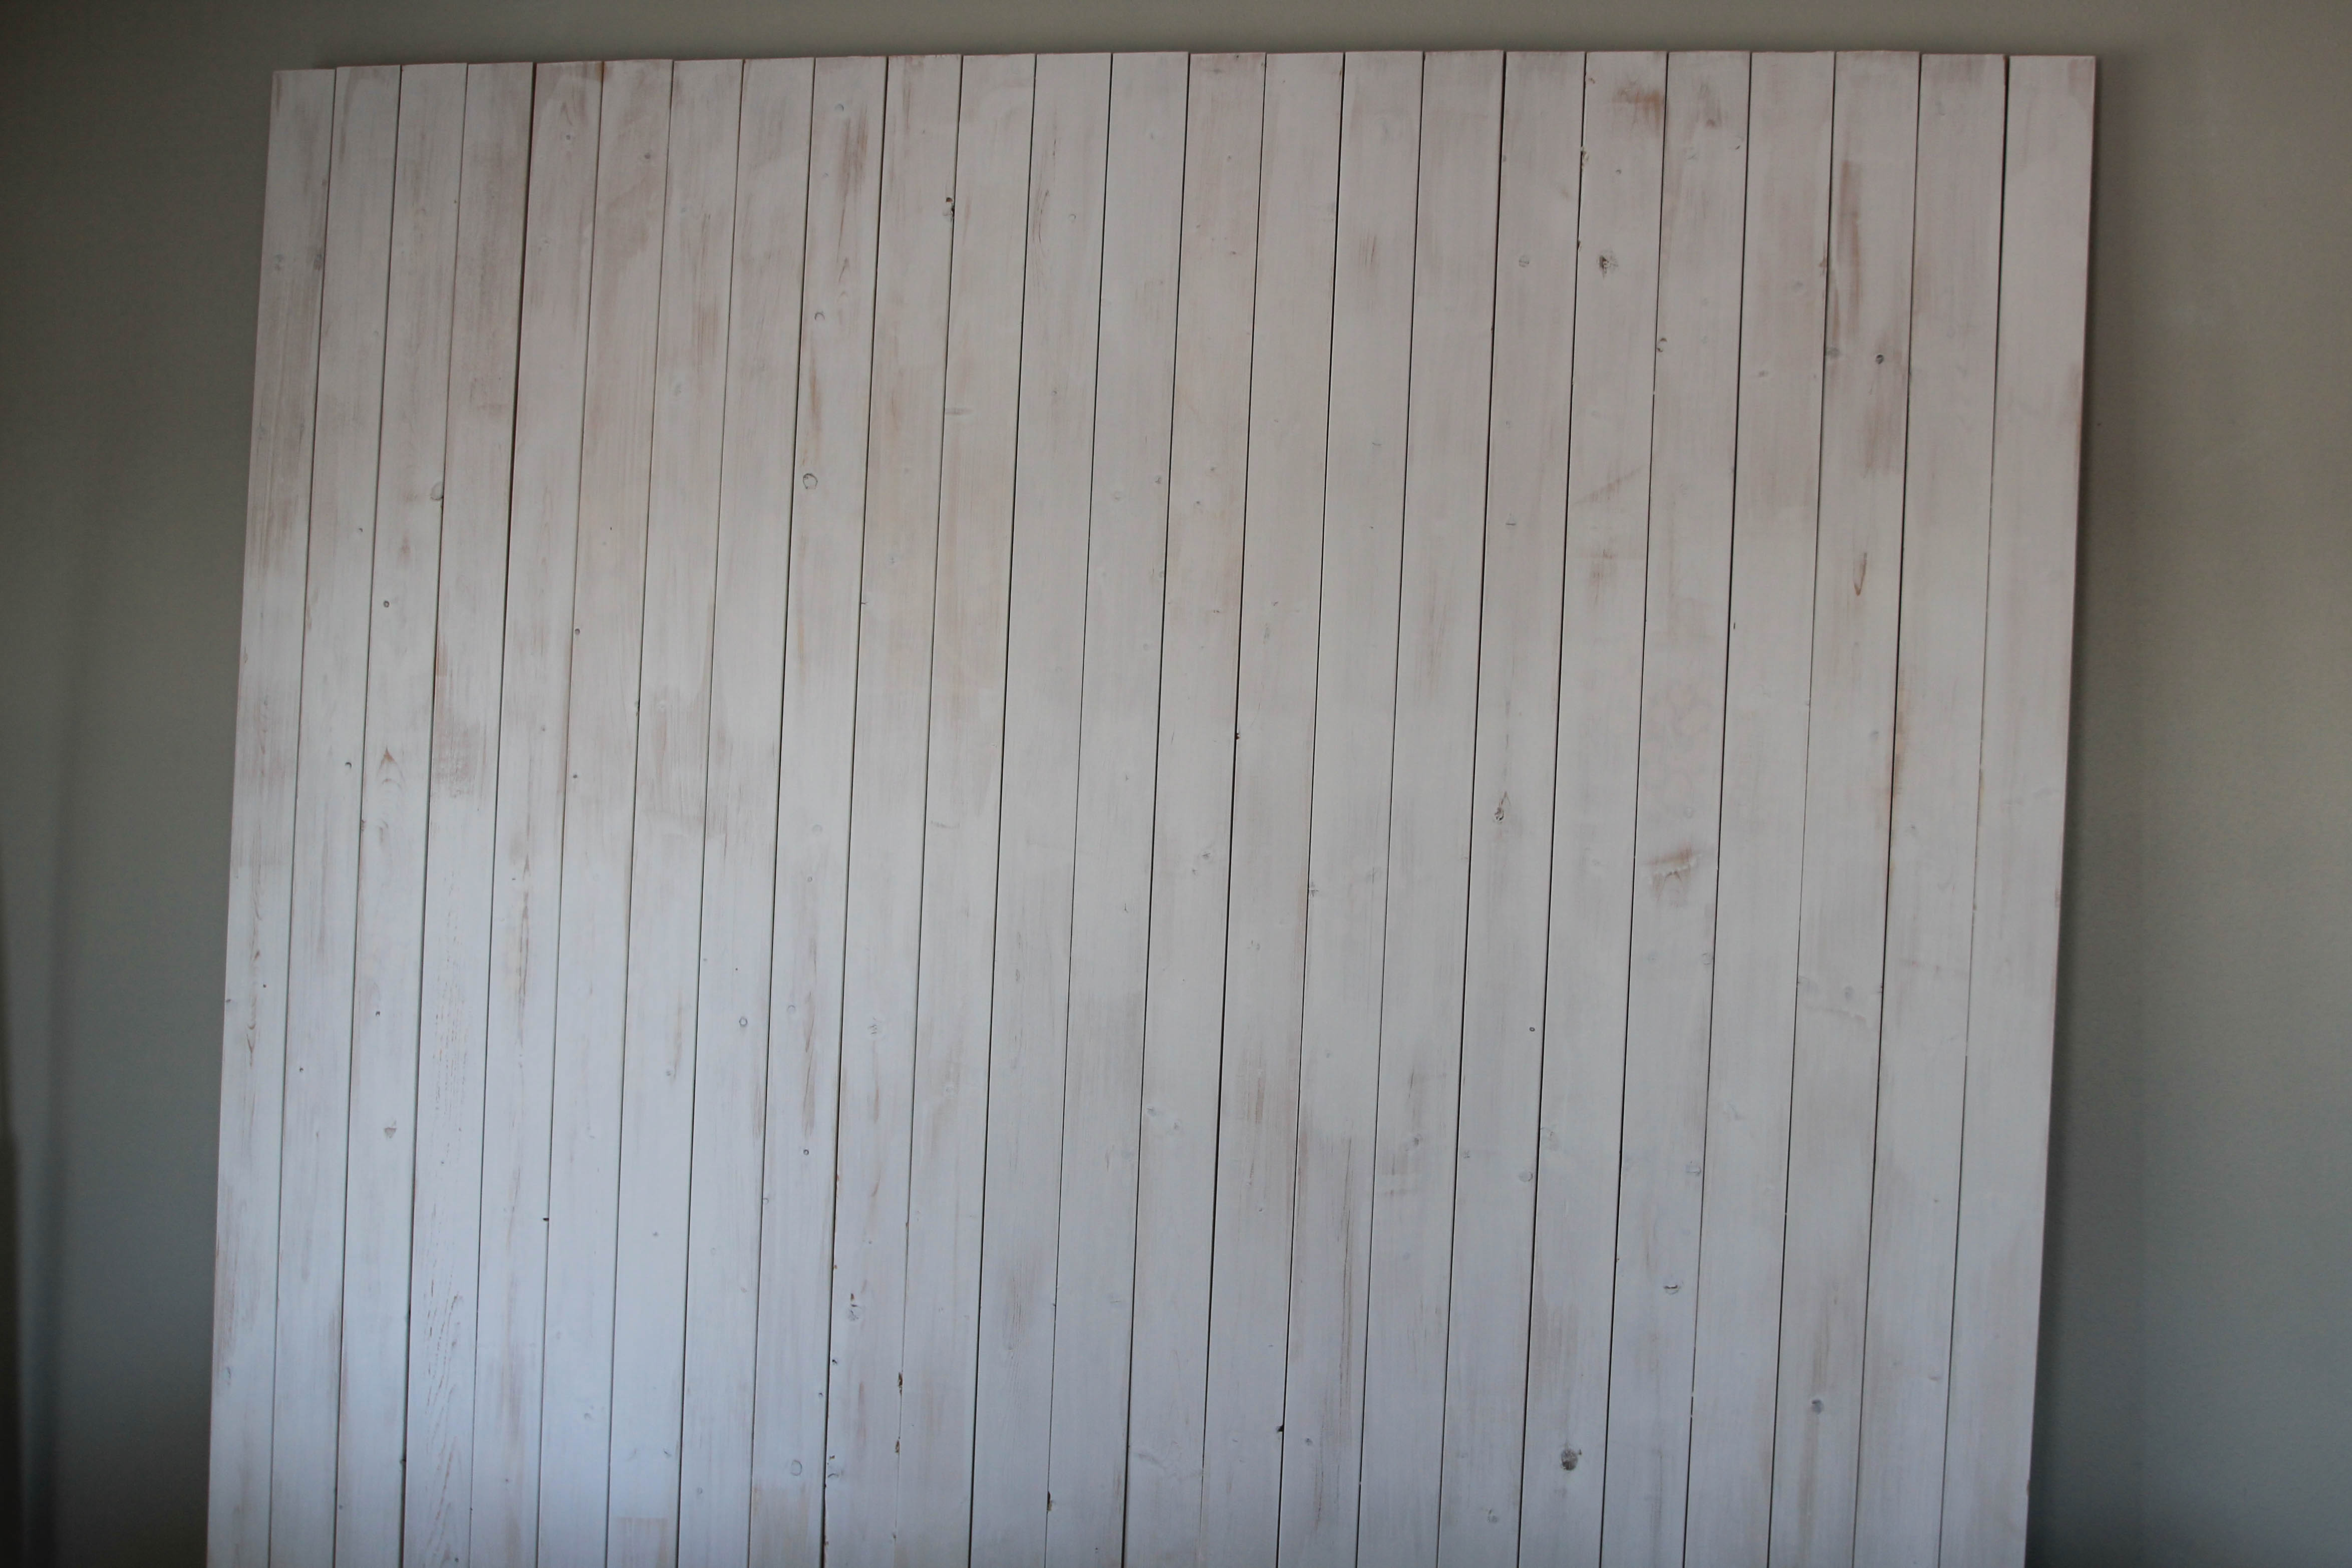 Whitewashing Stained Wood 4 Steps To Whitewash Wood A Tutorial